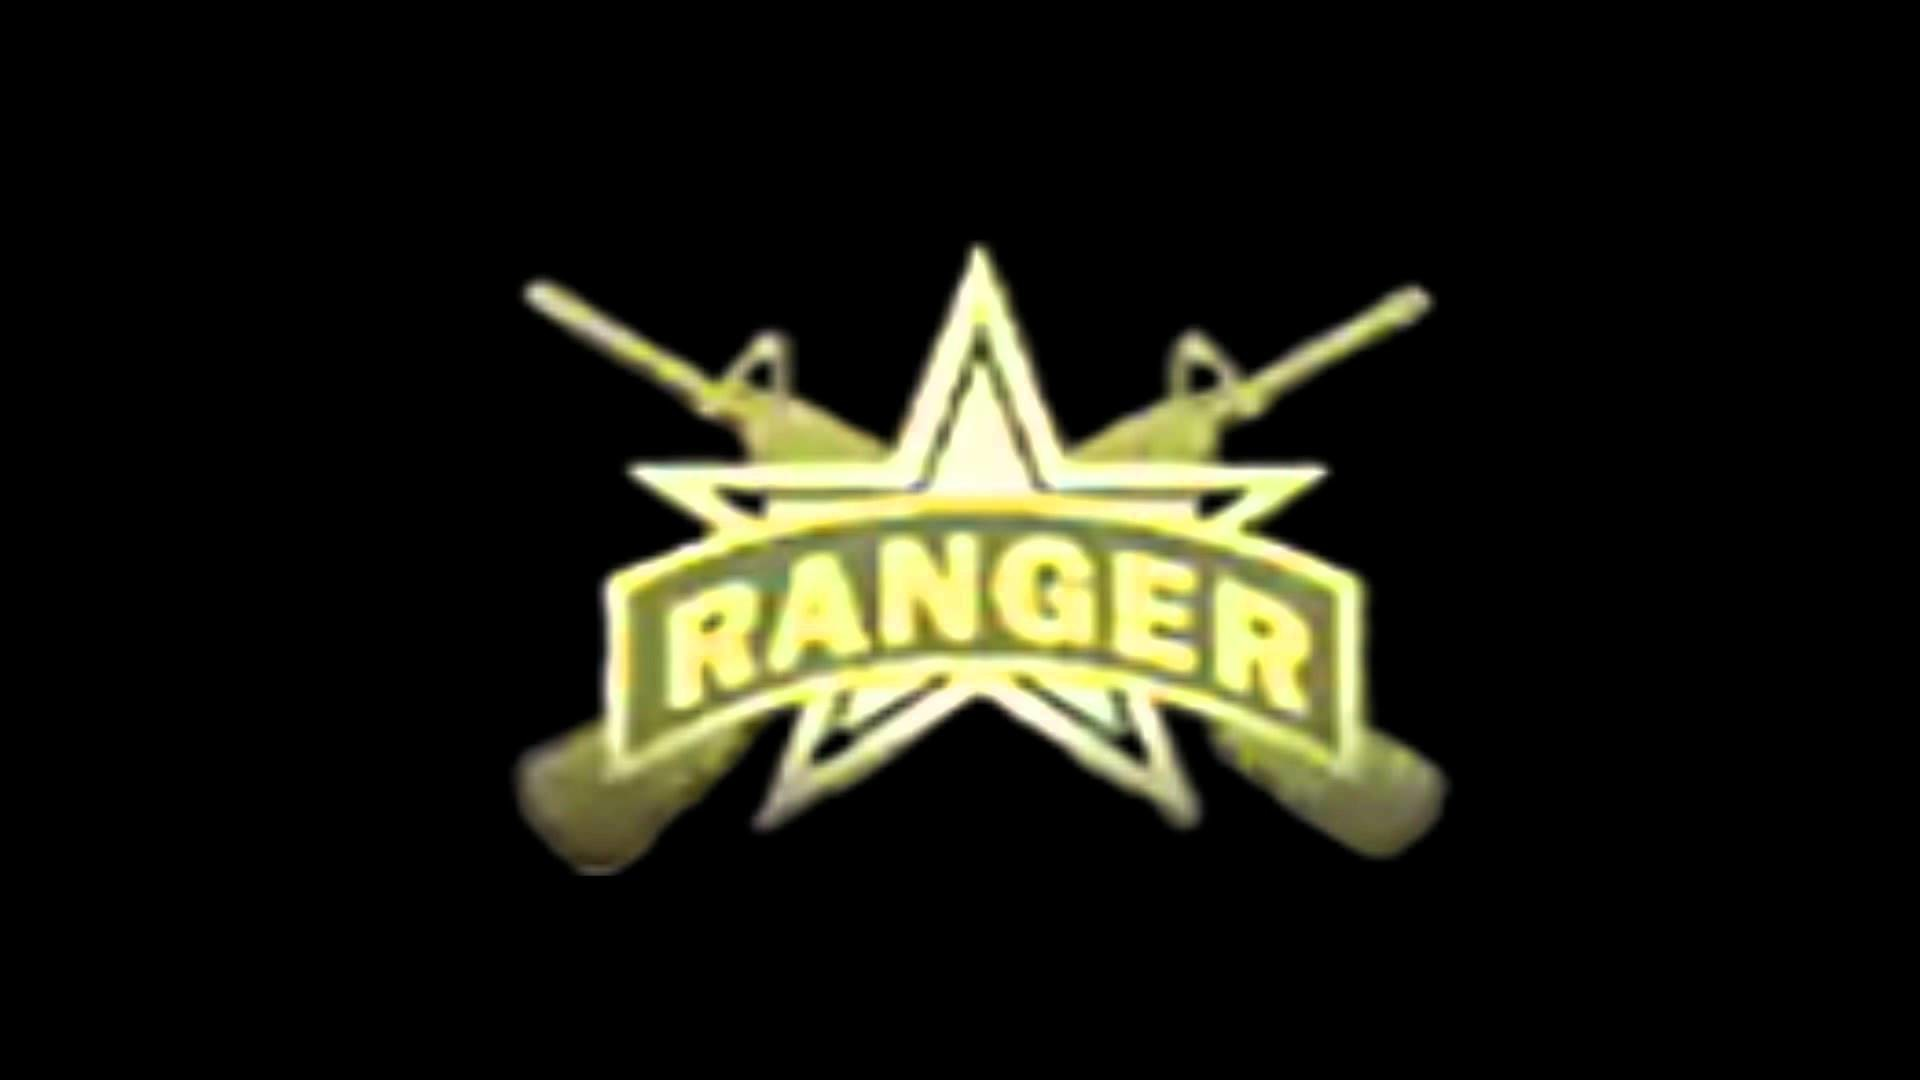 Call Of Duty: Modern Warfare 2 – Rangers victory Theme 10 MINUTES VERSION –  YouTube